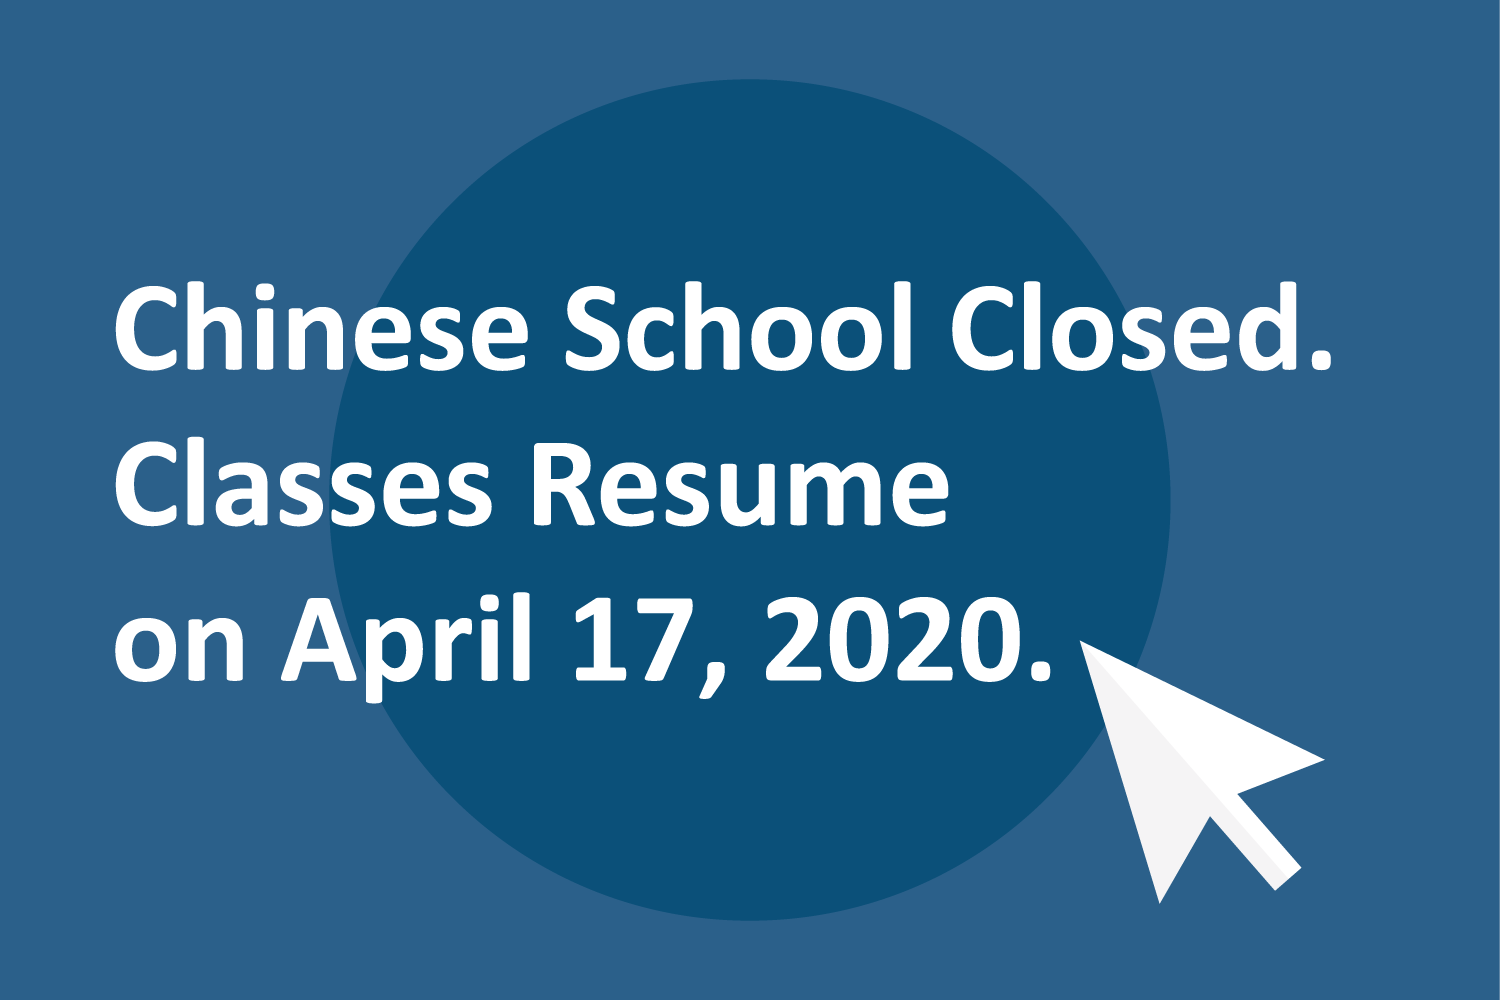 Chinese school closed. Classes resume on April 17, 2020